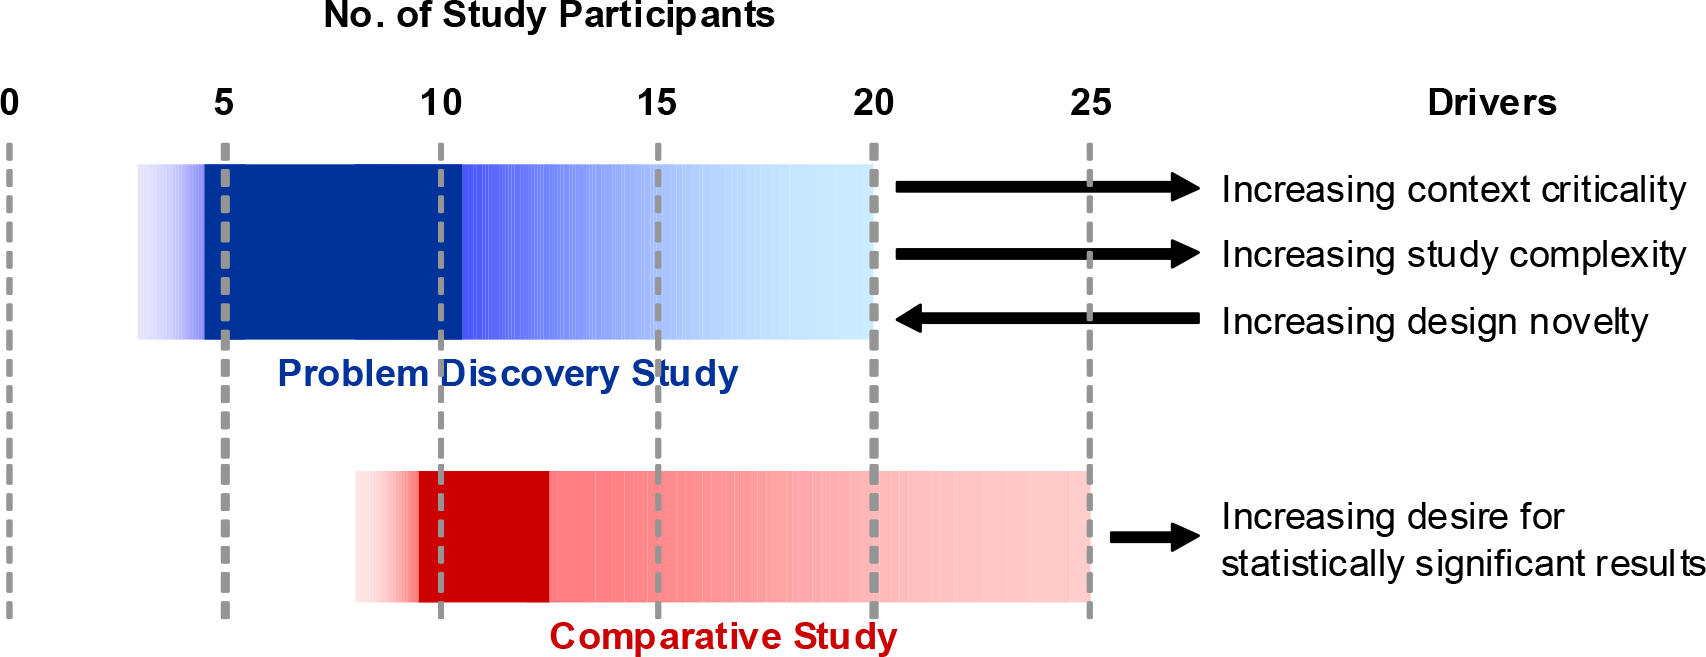 Graph from Rich Macefield c. 2009 showing participants to usability testing